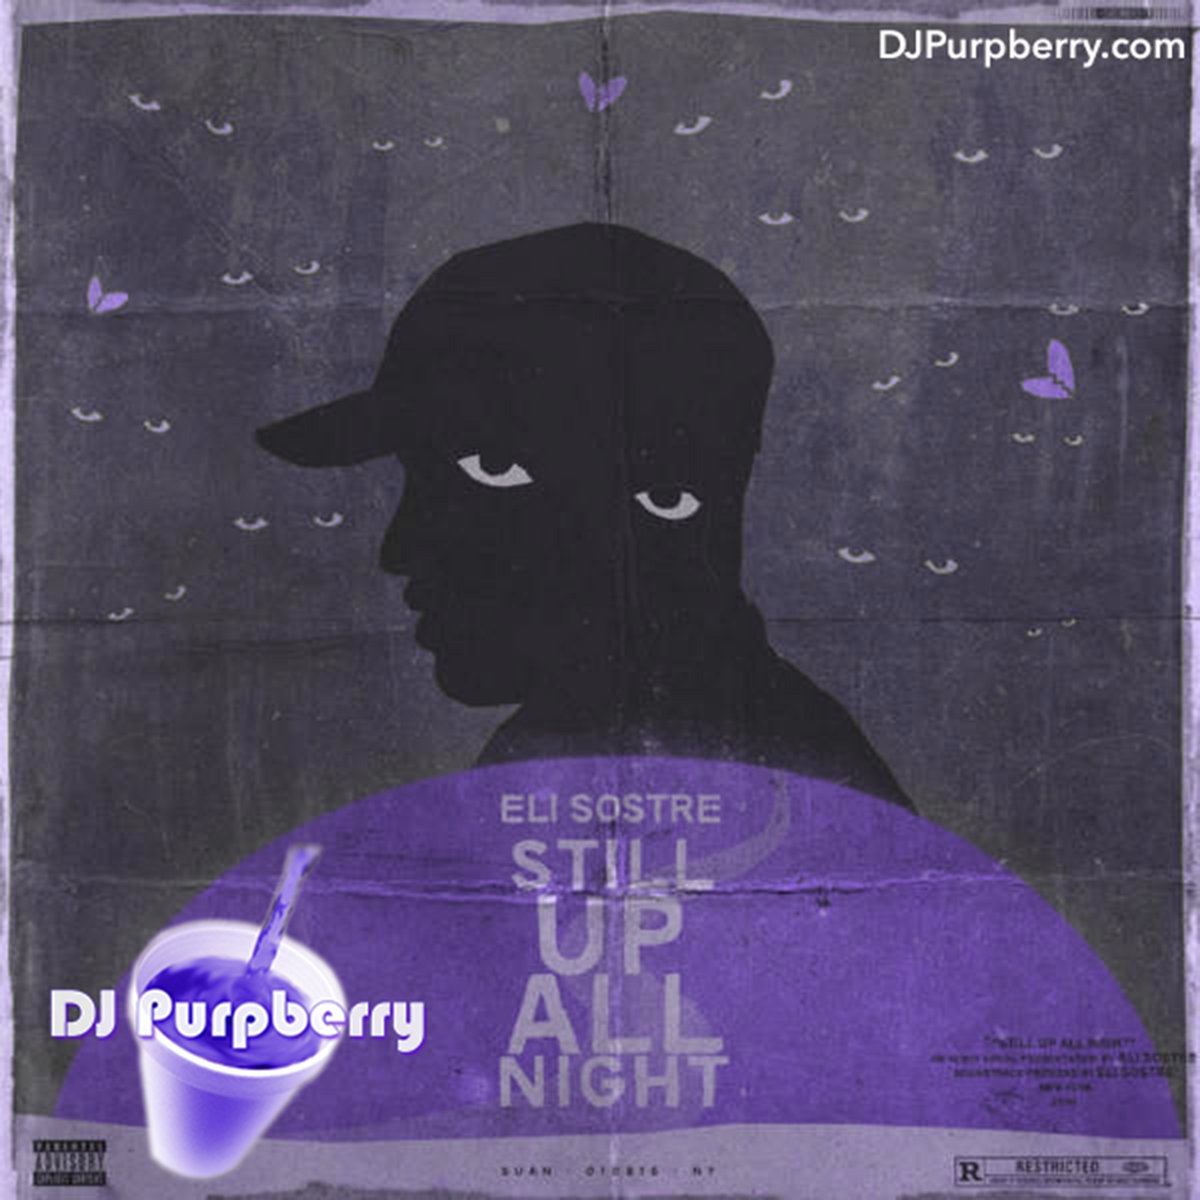 Dj screw gray tape in the deck mixtape by various artists hosted.